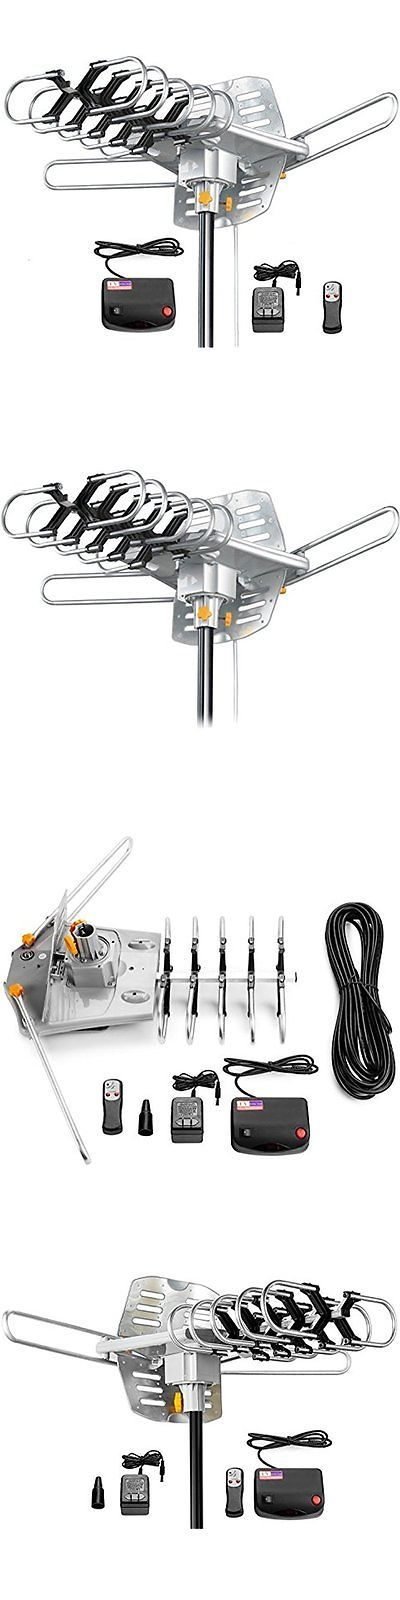 Antennas and Dishes: Amplified Tv Antennas Hd Digital Outdoor Hdtv Antenna 150 Miles Long Range With -> BUY IT NOW ONLY: $43.59 on eBay!